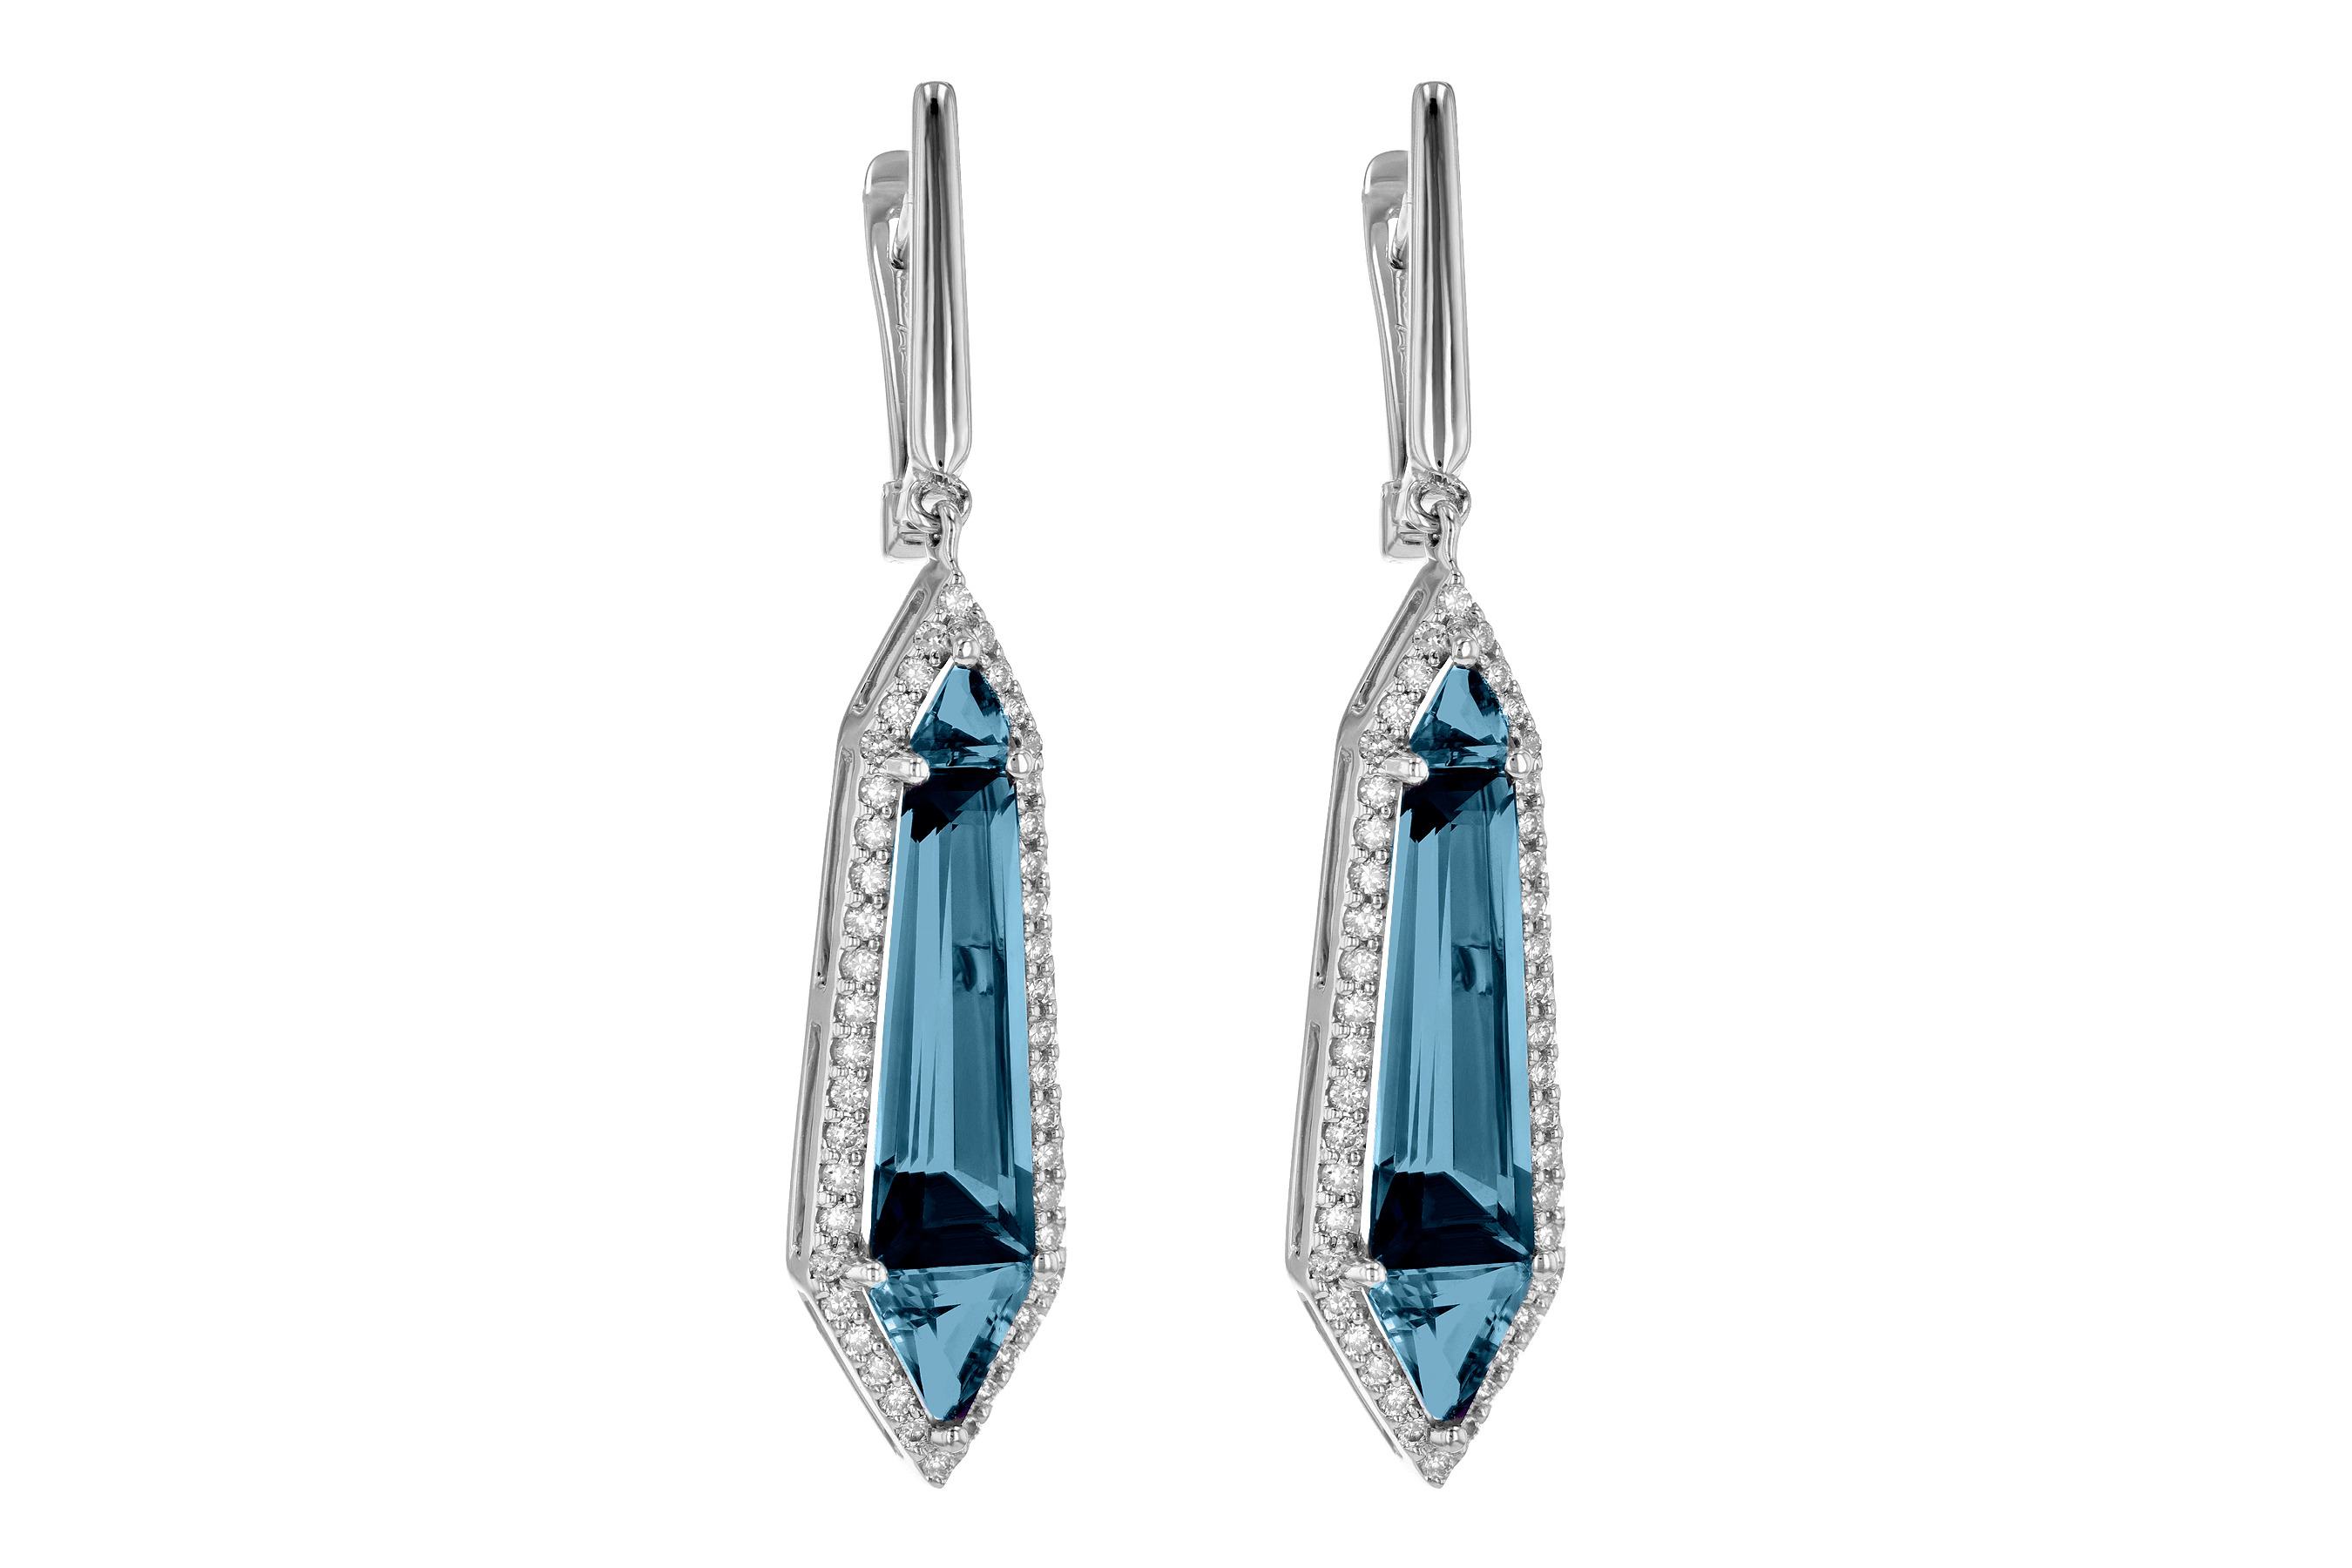 E190-12467: EARR 5.25 LONDON BLUE TOPAZ 5.67 TGW